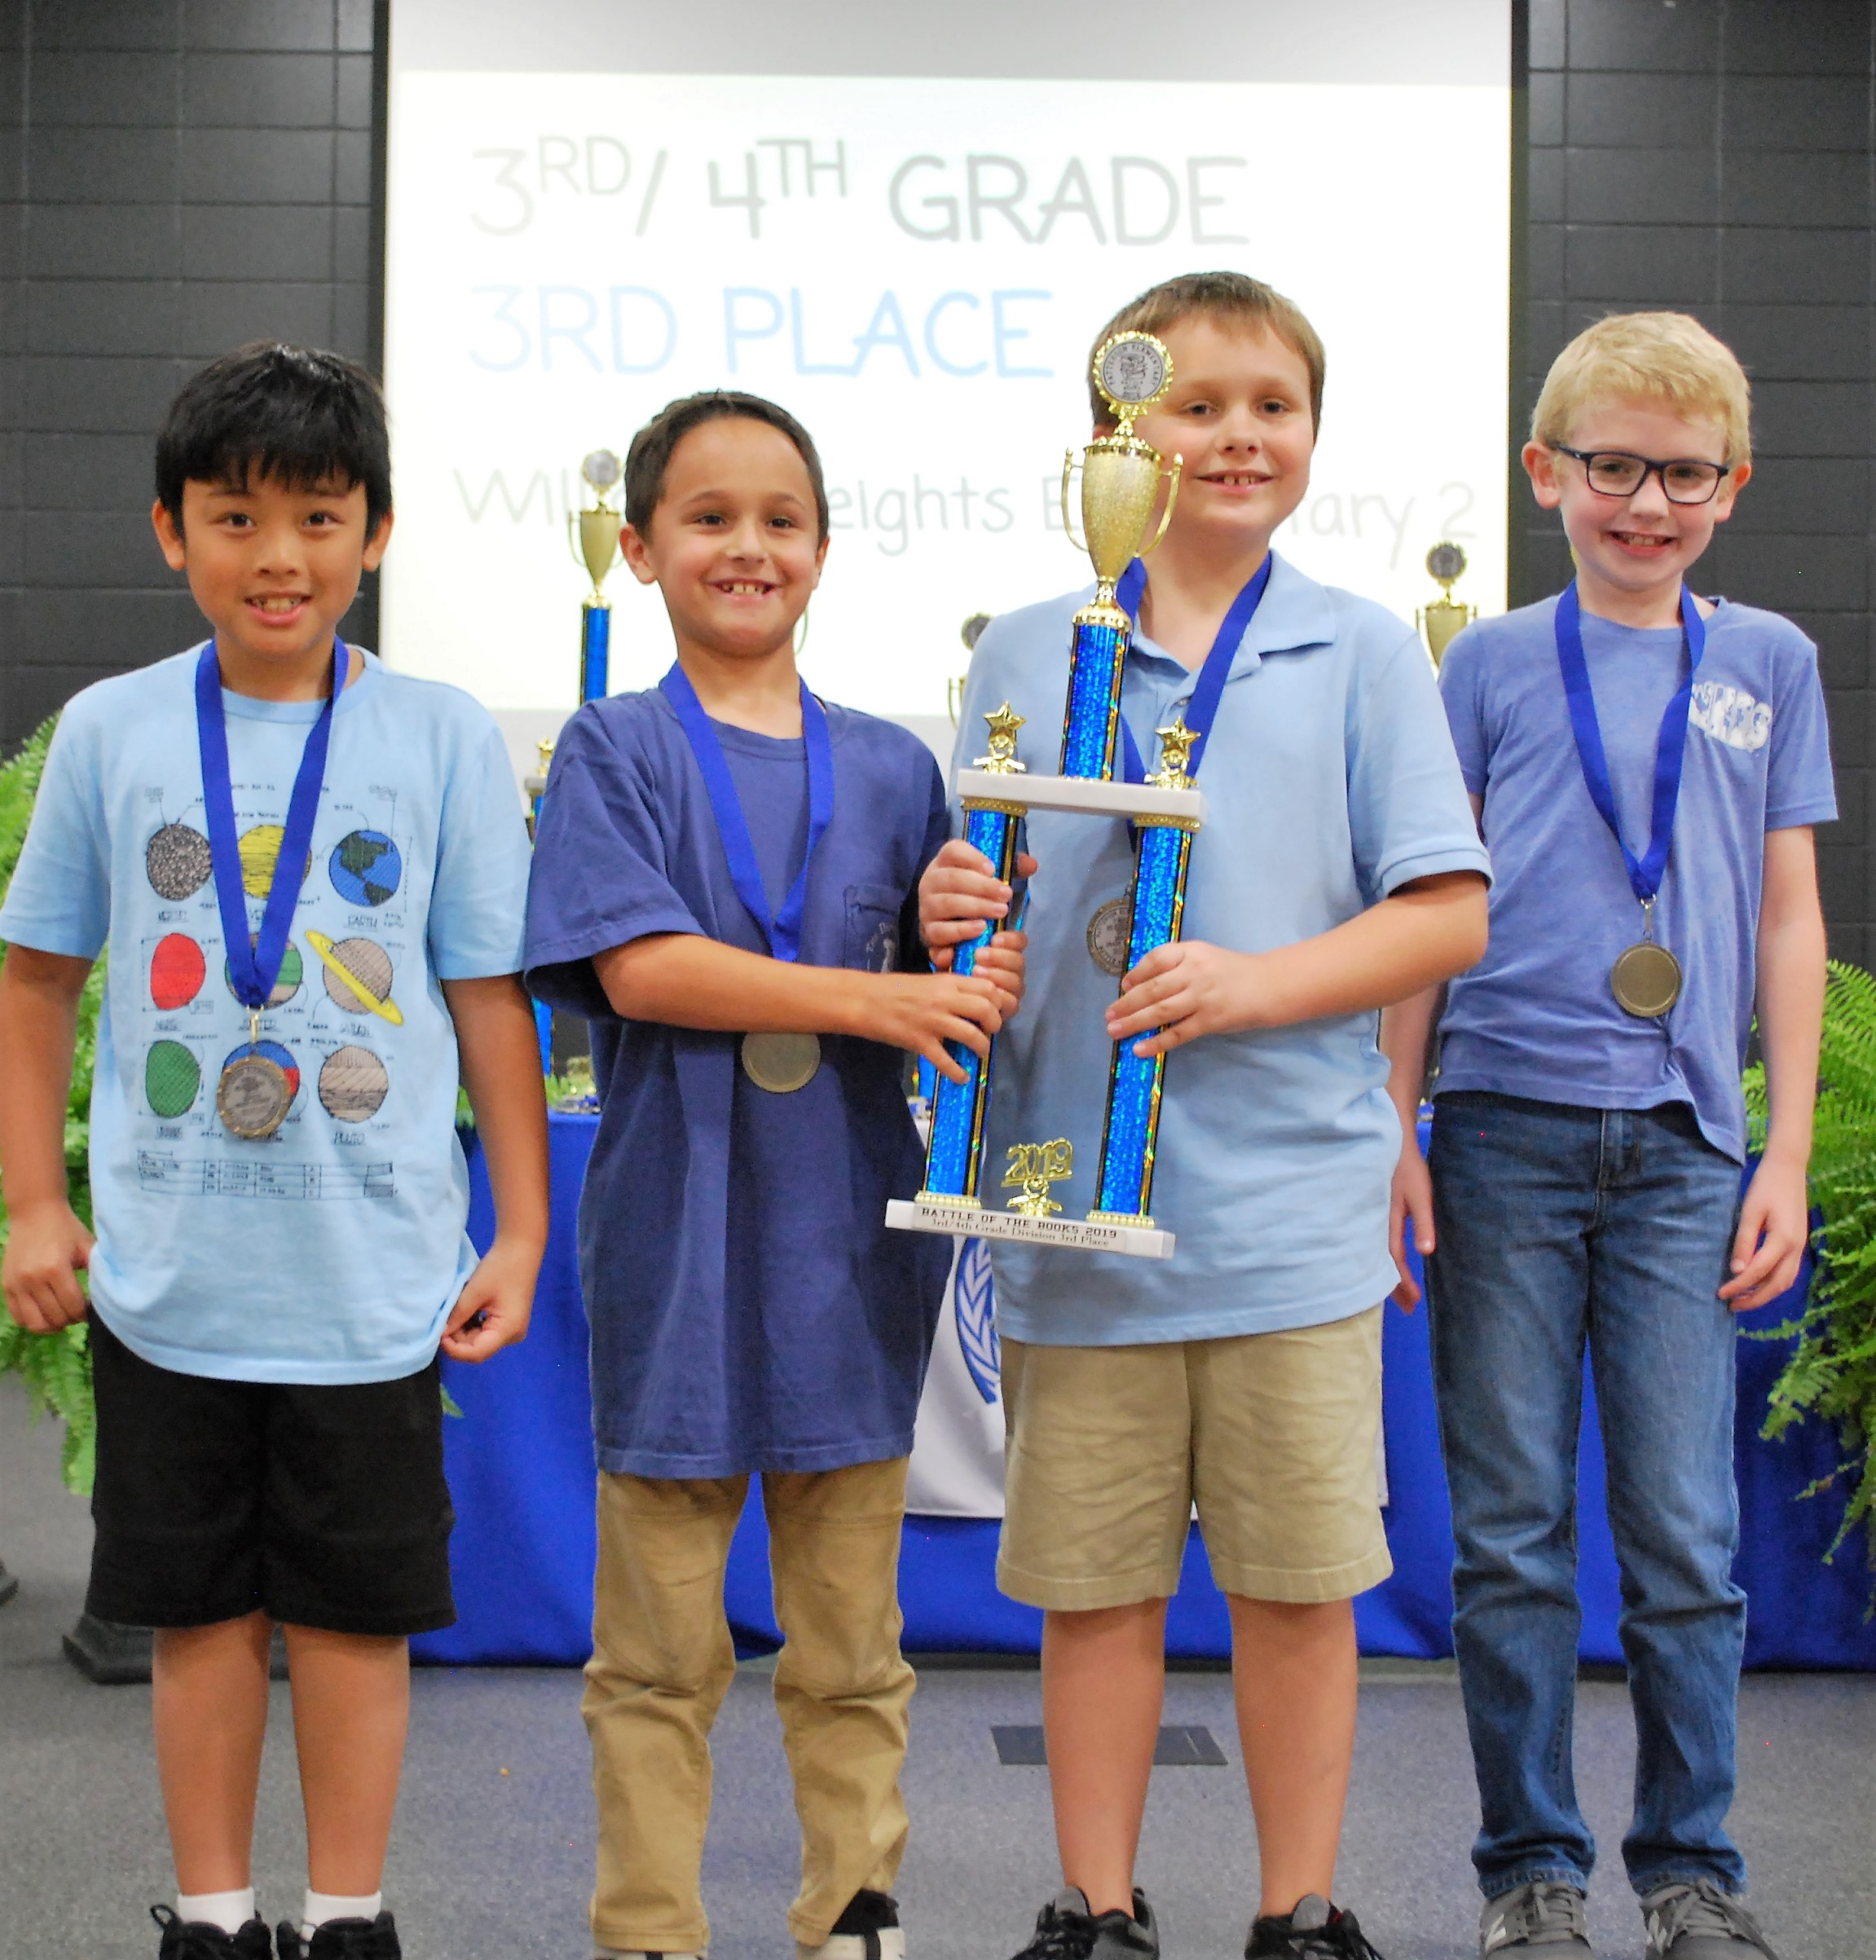 3rd/4th Grade: 3rd Place Wiliam Heights 2